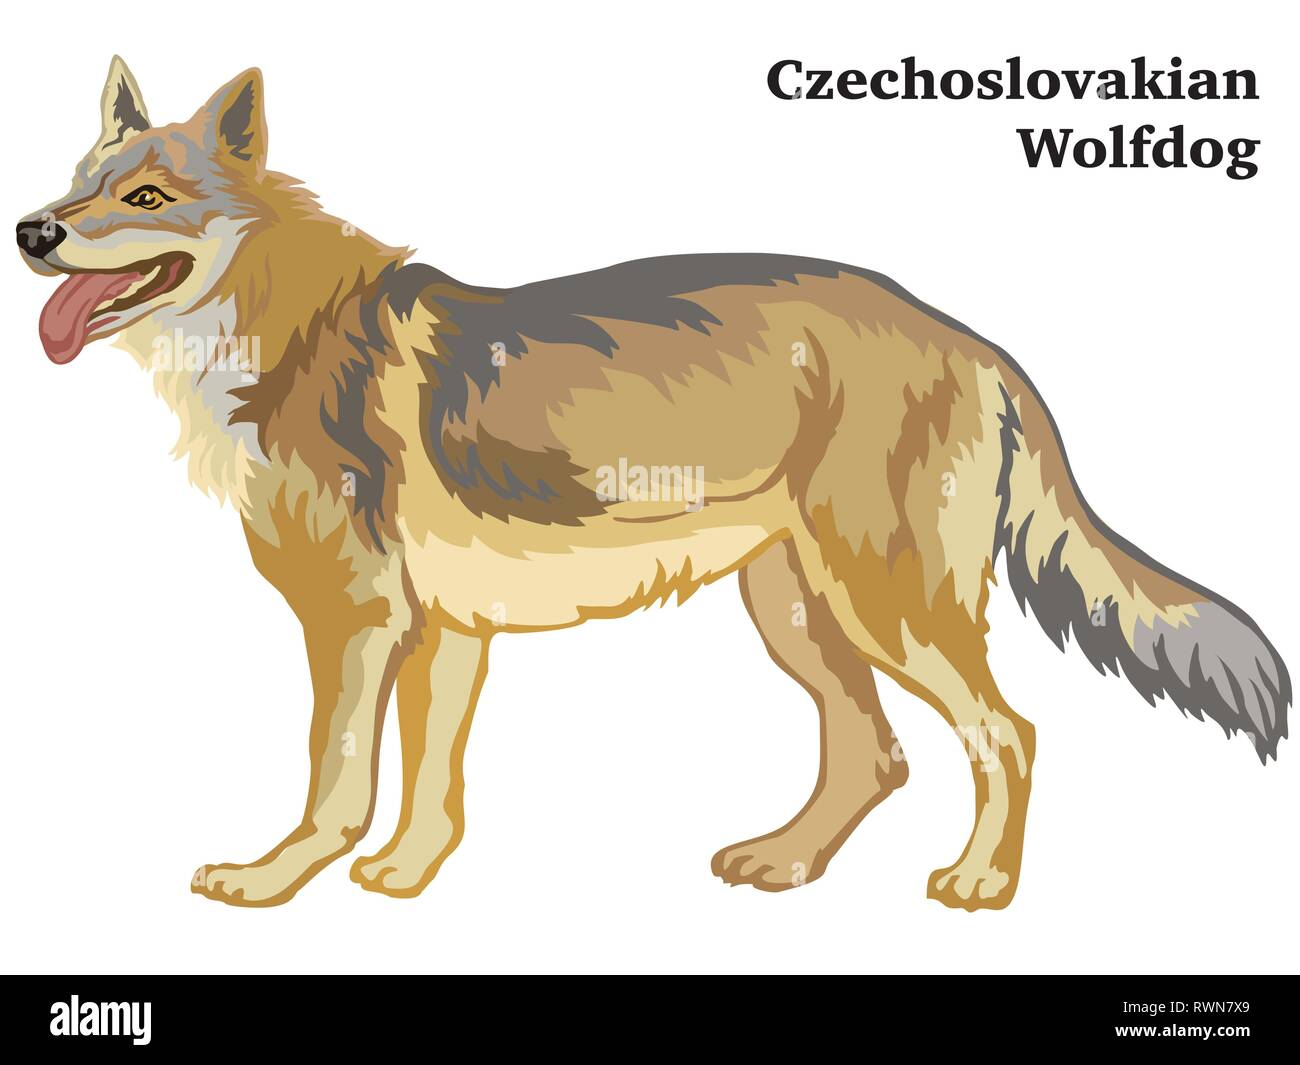 Decorative outline portrait of standing in profile dog Czechoslovakian Wolfdog, vector colorful illustration isolated on white background. Image for d - Stock Image